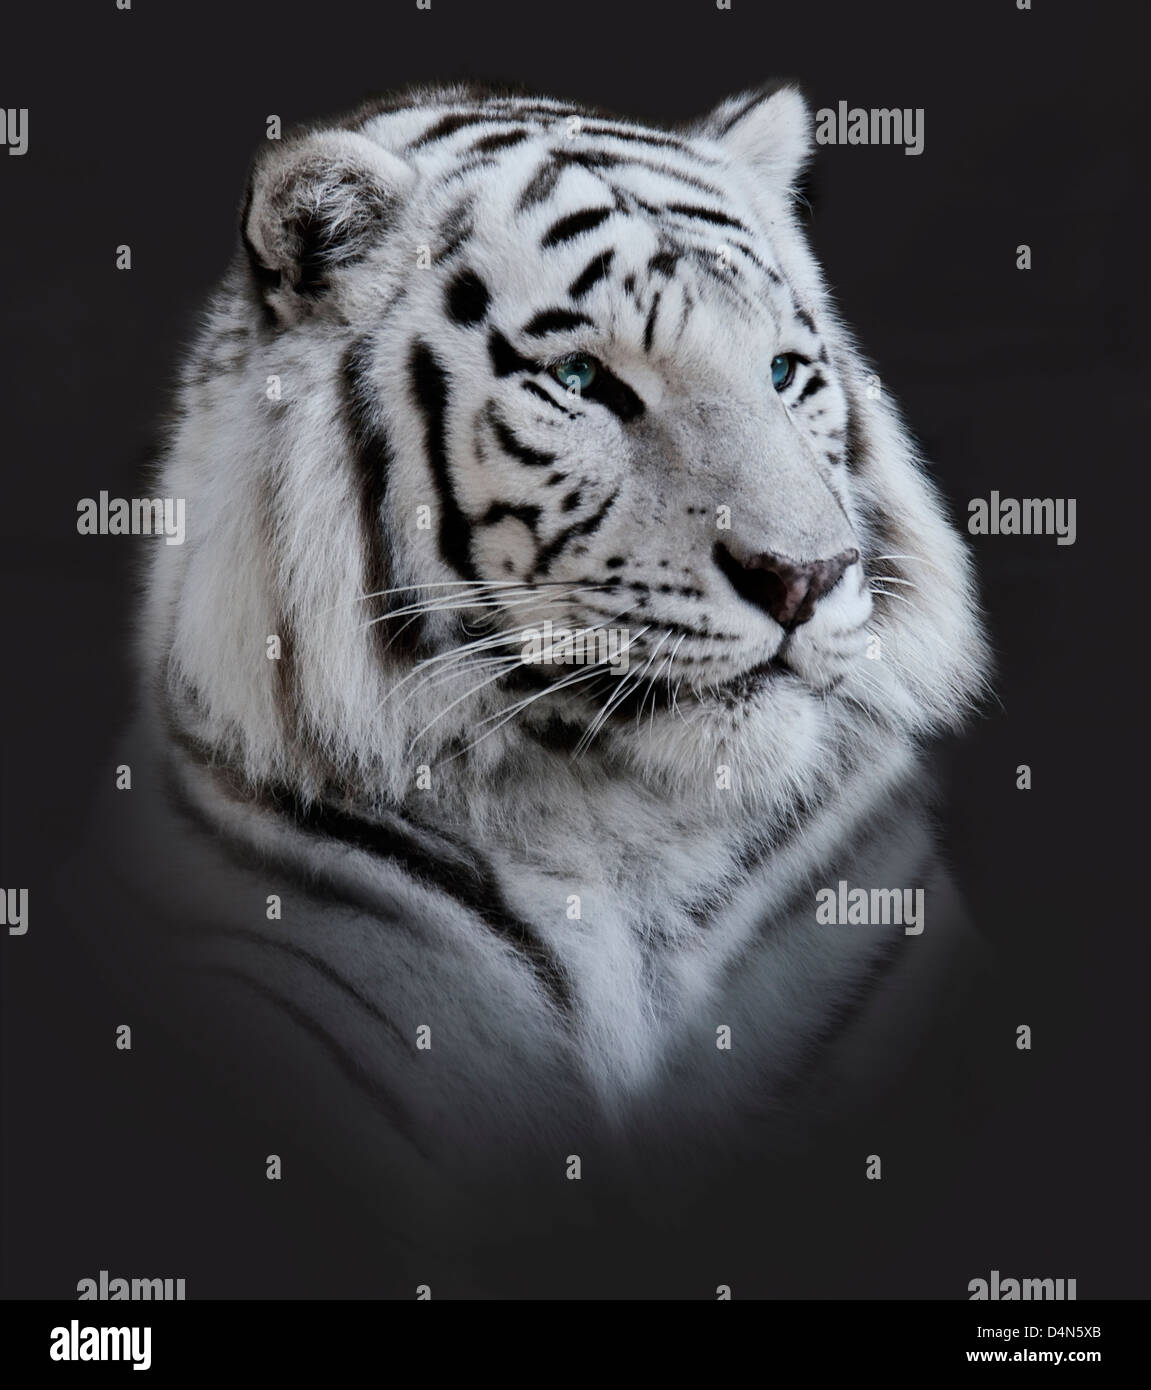 Portrait du Tigre blanc sur fond sombre Photo Stock